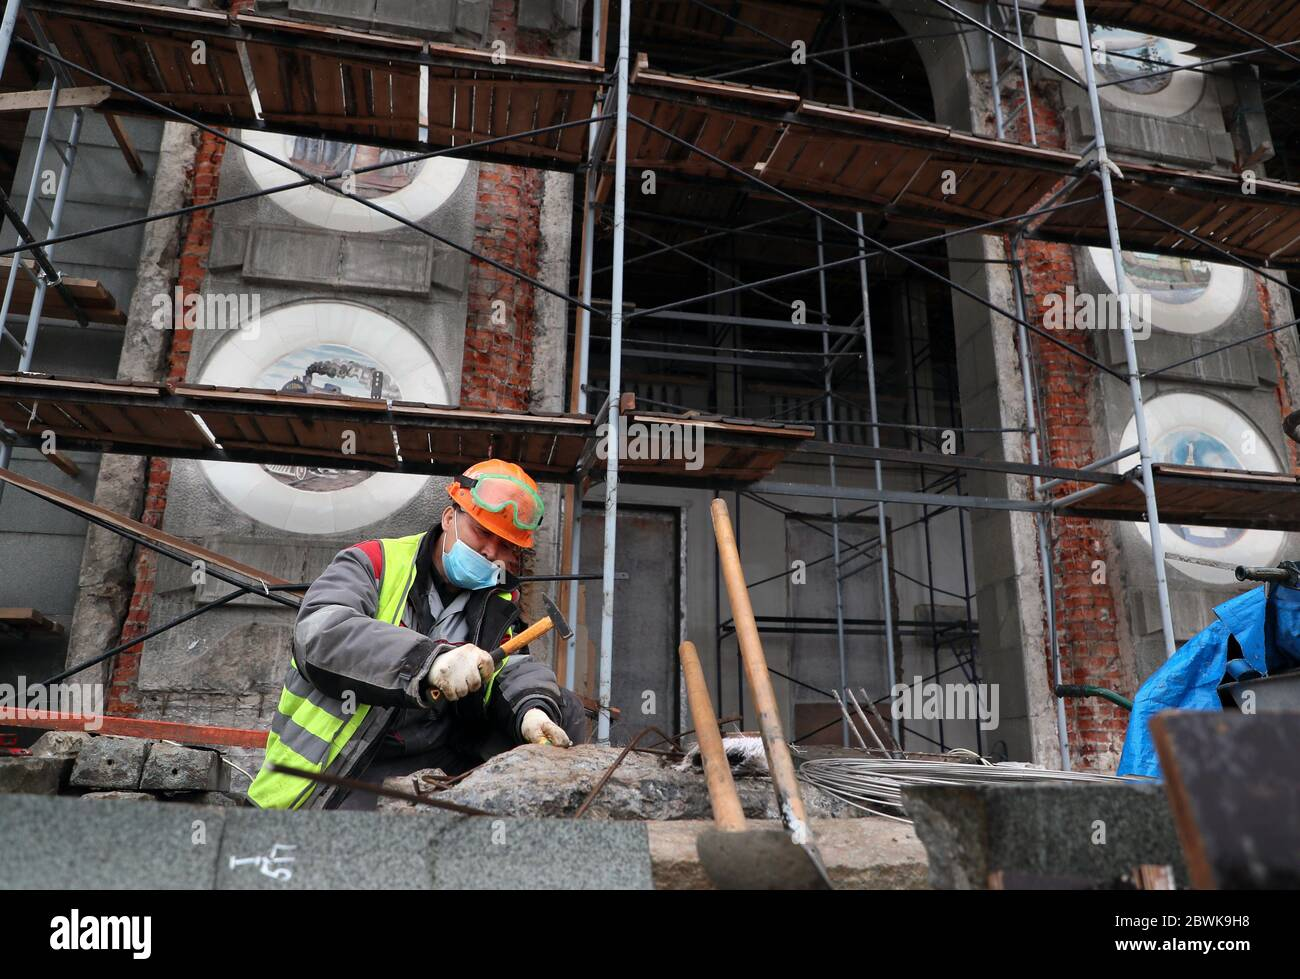 Moscow, Russia. 2nd June, 2020. Improvement works under way at the North River Terminal. Credit: Gavriil Grigorov/TASS/Alamy Live News Stock Photo